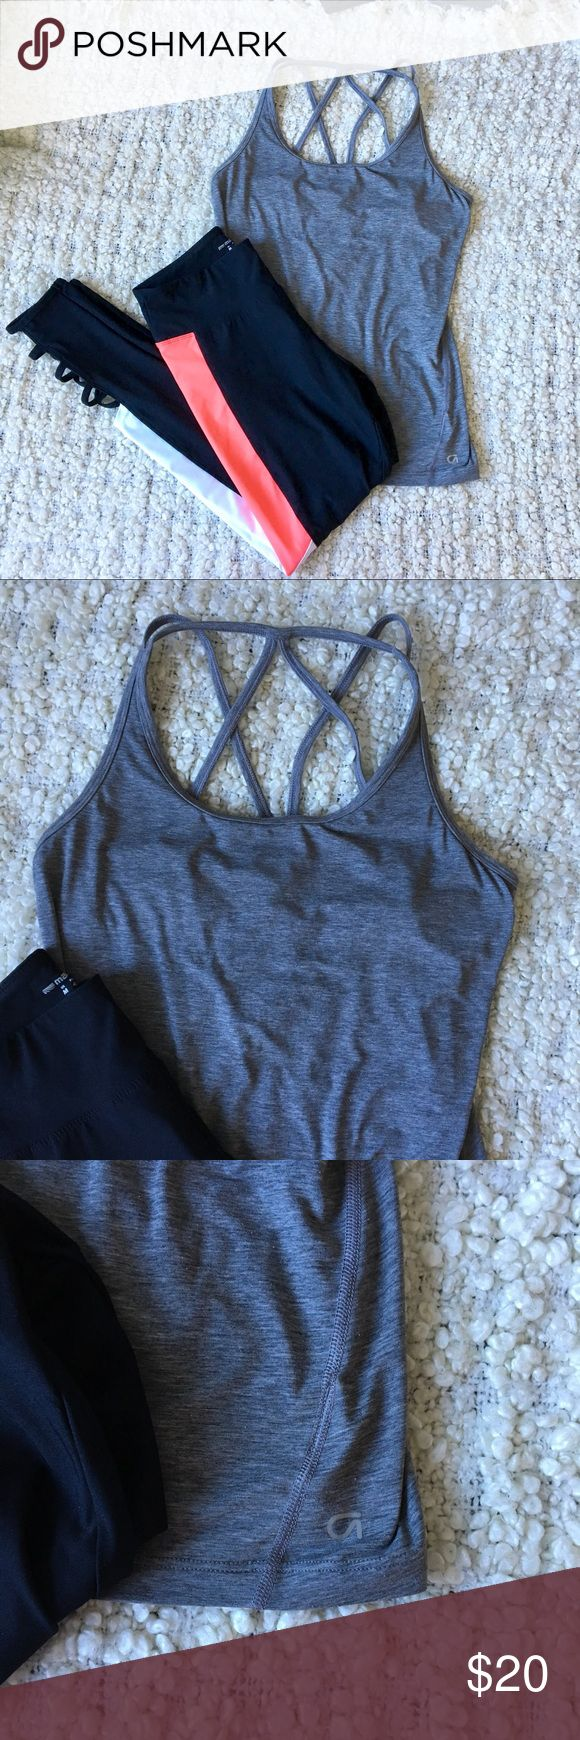 [Tank] Gap Fit • Grey strappy back fitness tank Great strappy back tank with shelf bra from gap fit. I love this too and there are no major issues I just have too many gym items! Grey in color, with funky strappy back pattern. Looks great with bright leggings or a fun pattern.sports bra! Very minimal pilling shown in last photo. Material tag was removed.   Leggings are NWT and will be for sale in closet soon. Please let me know if you're interested in being tagged once they are posted…